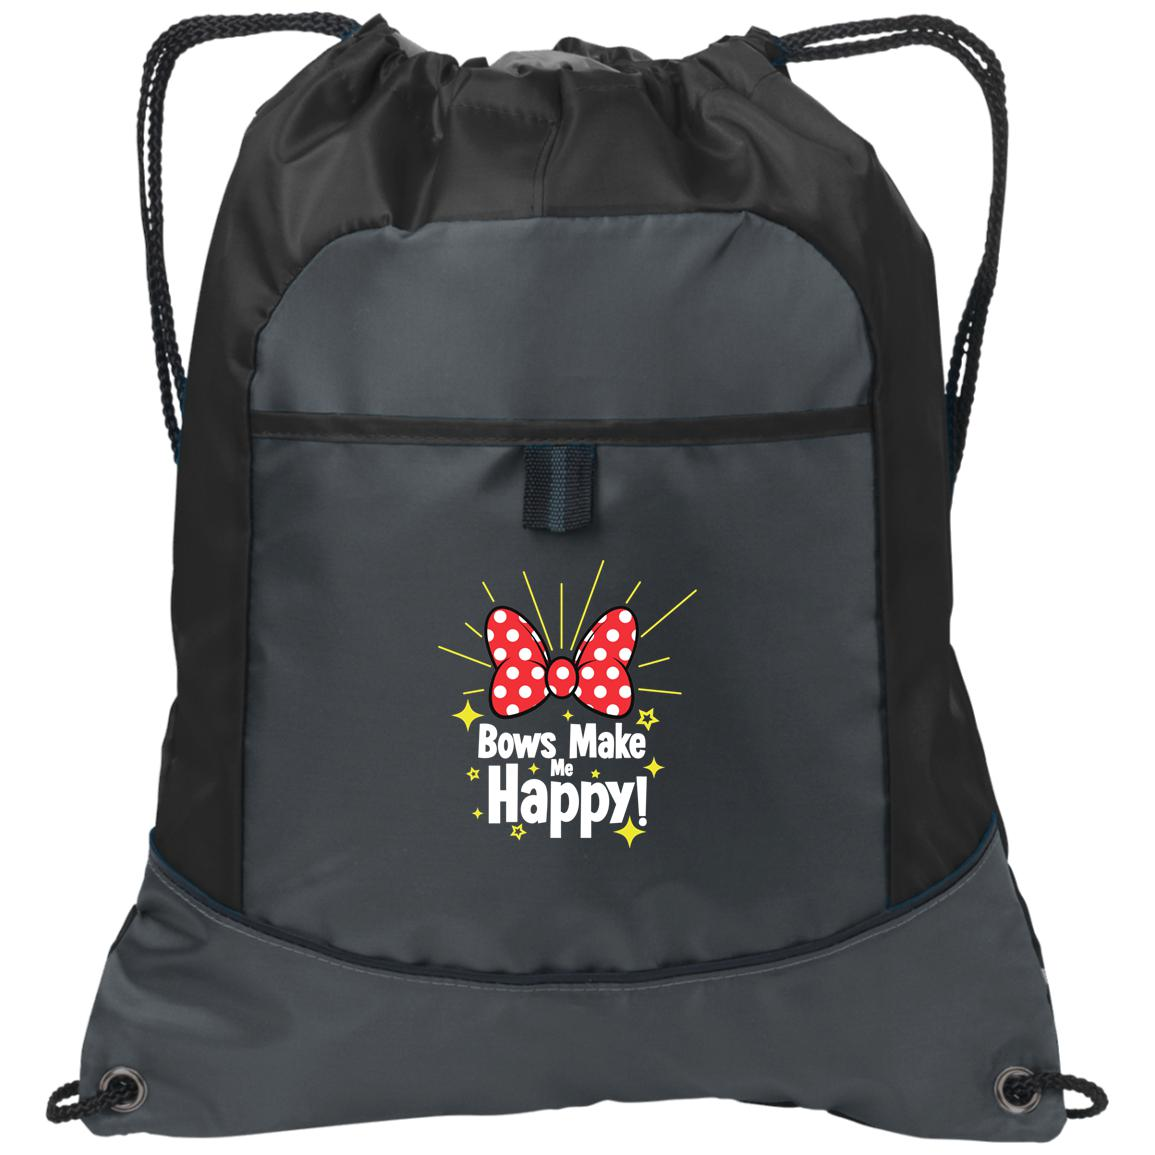 Bows Make Me Happy - Port Authority Pocket Cinch Pack